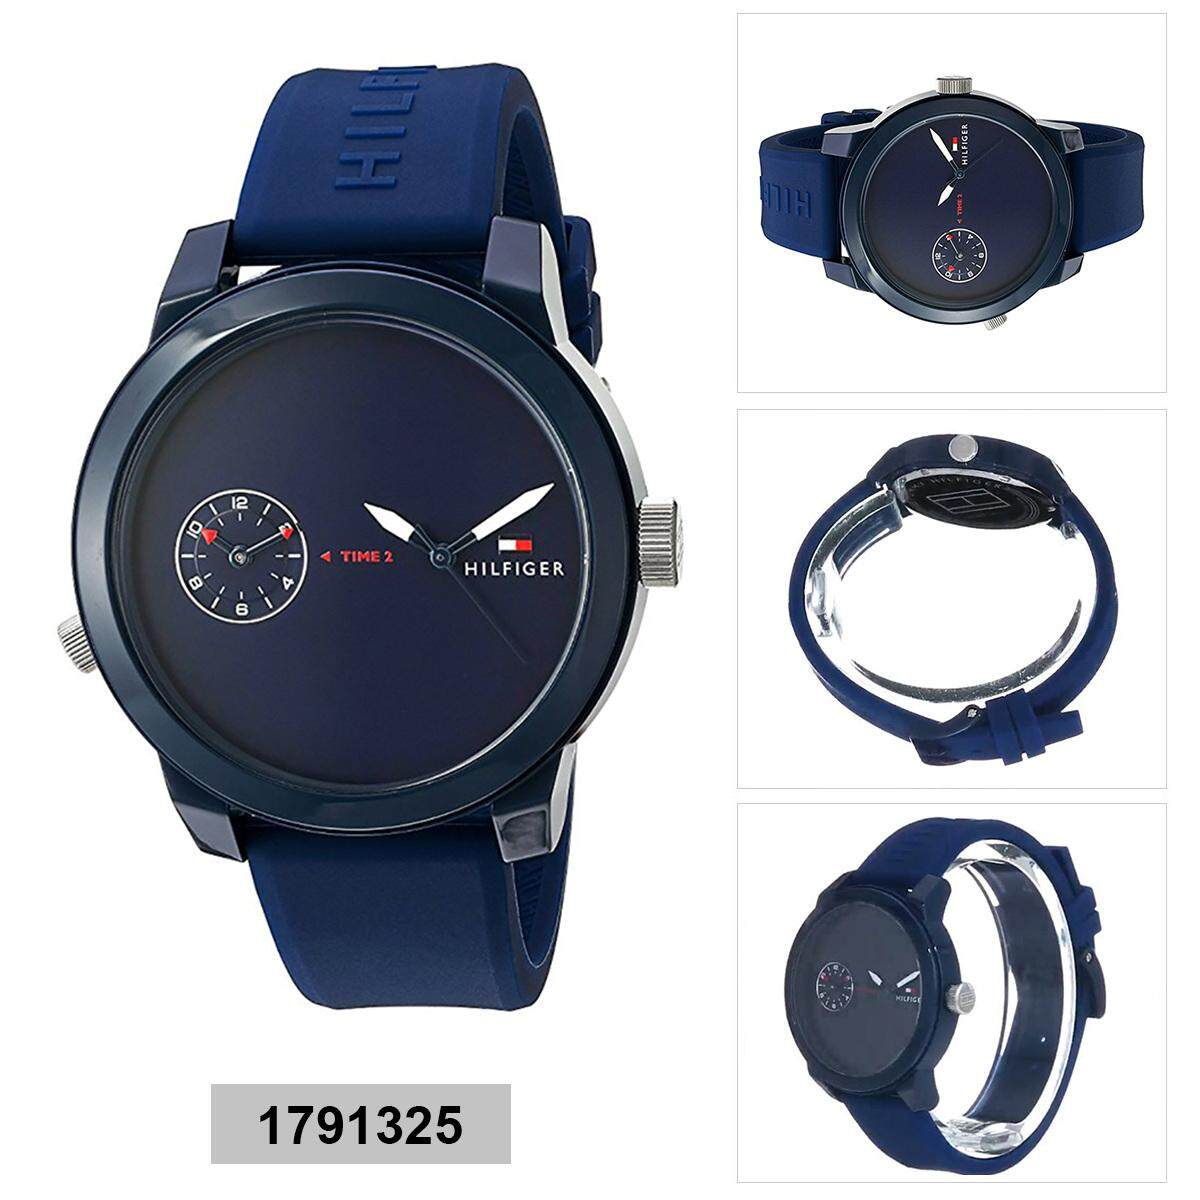 0dff9631c6f3b1 Tommy Hilfiger Philippines -Tommy Hilfiger Watches for sale - prices ...